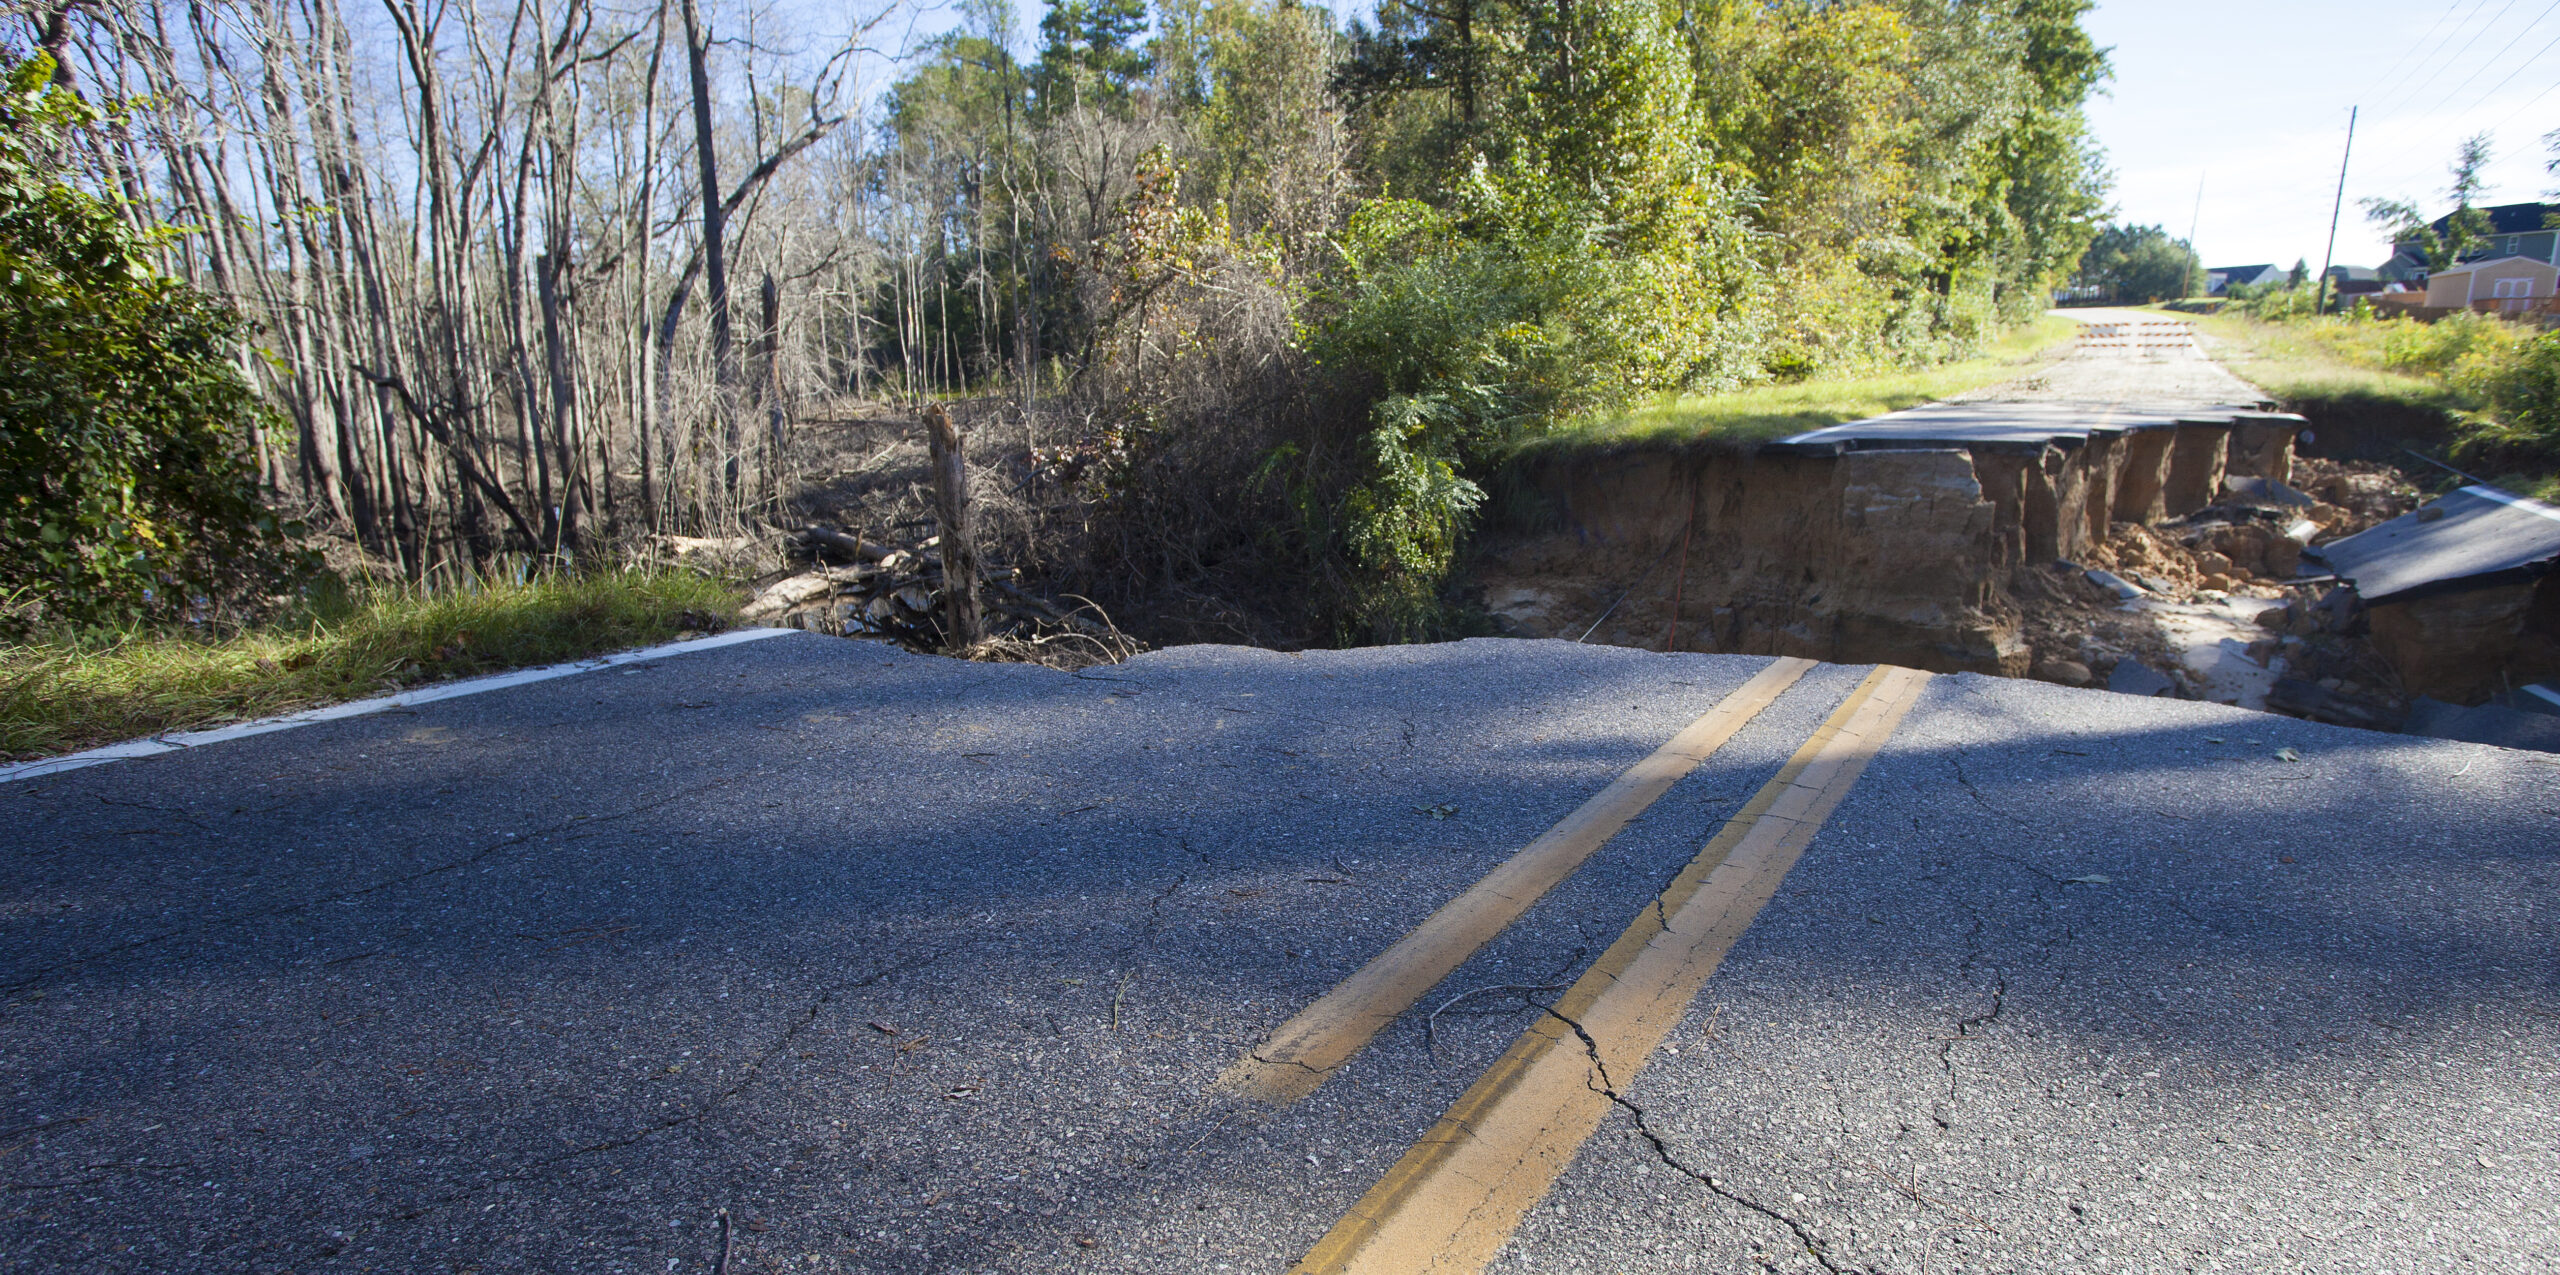 Roadway that has disappeared near Fayetteville North Carolina after Hurricane Matthew